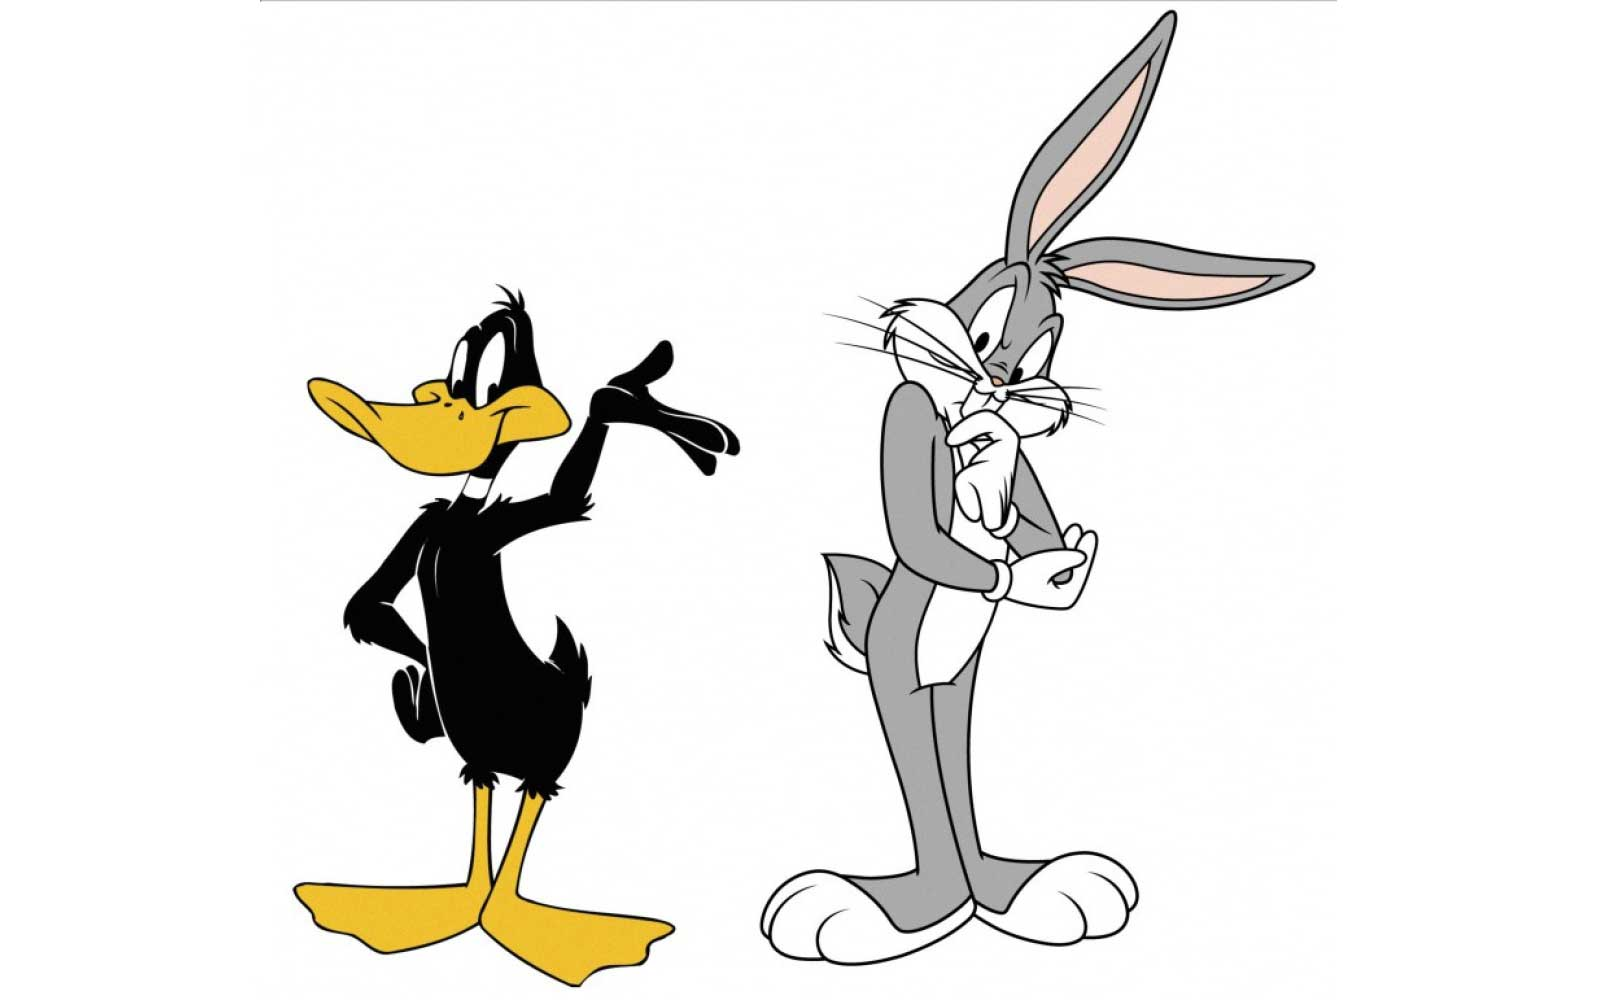 BUGS, DAFFY AND CHUMS